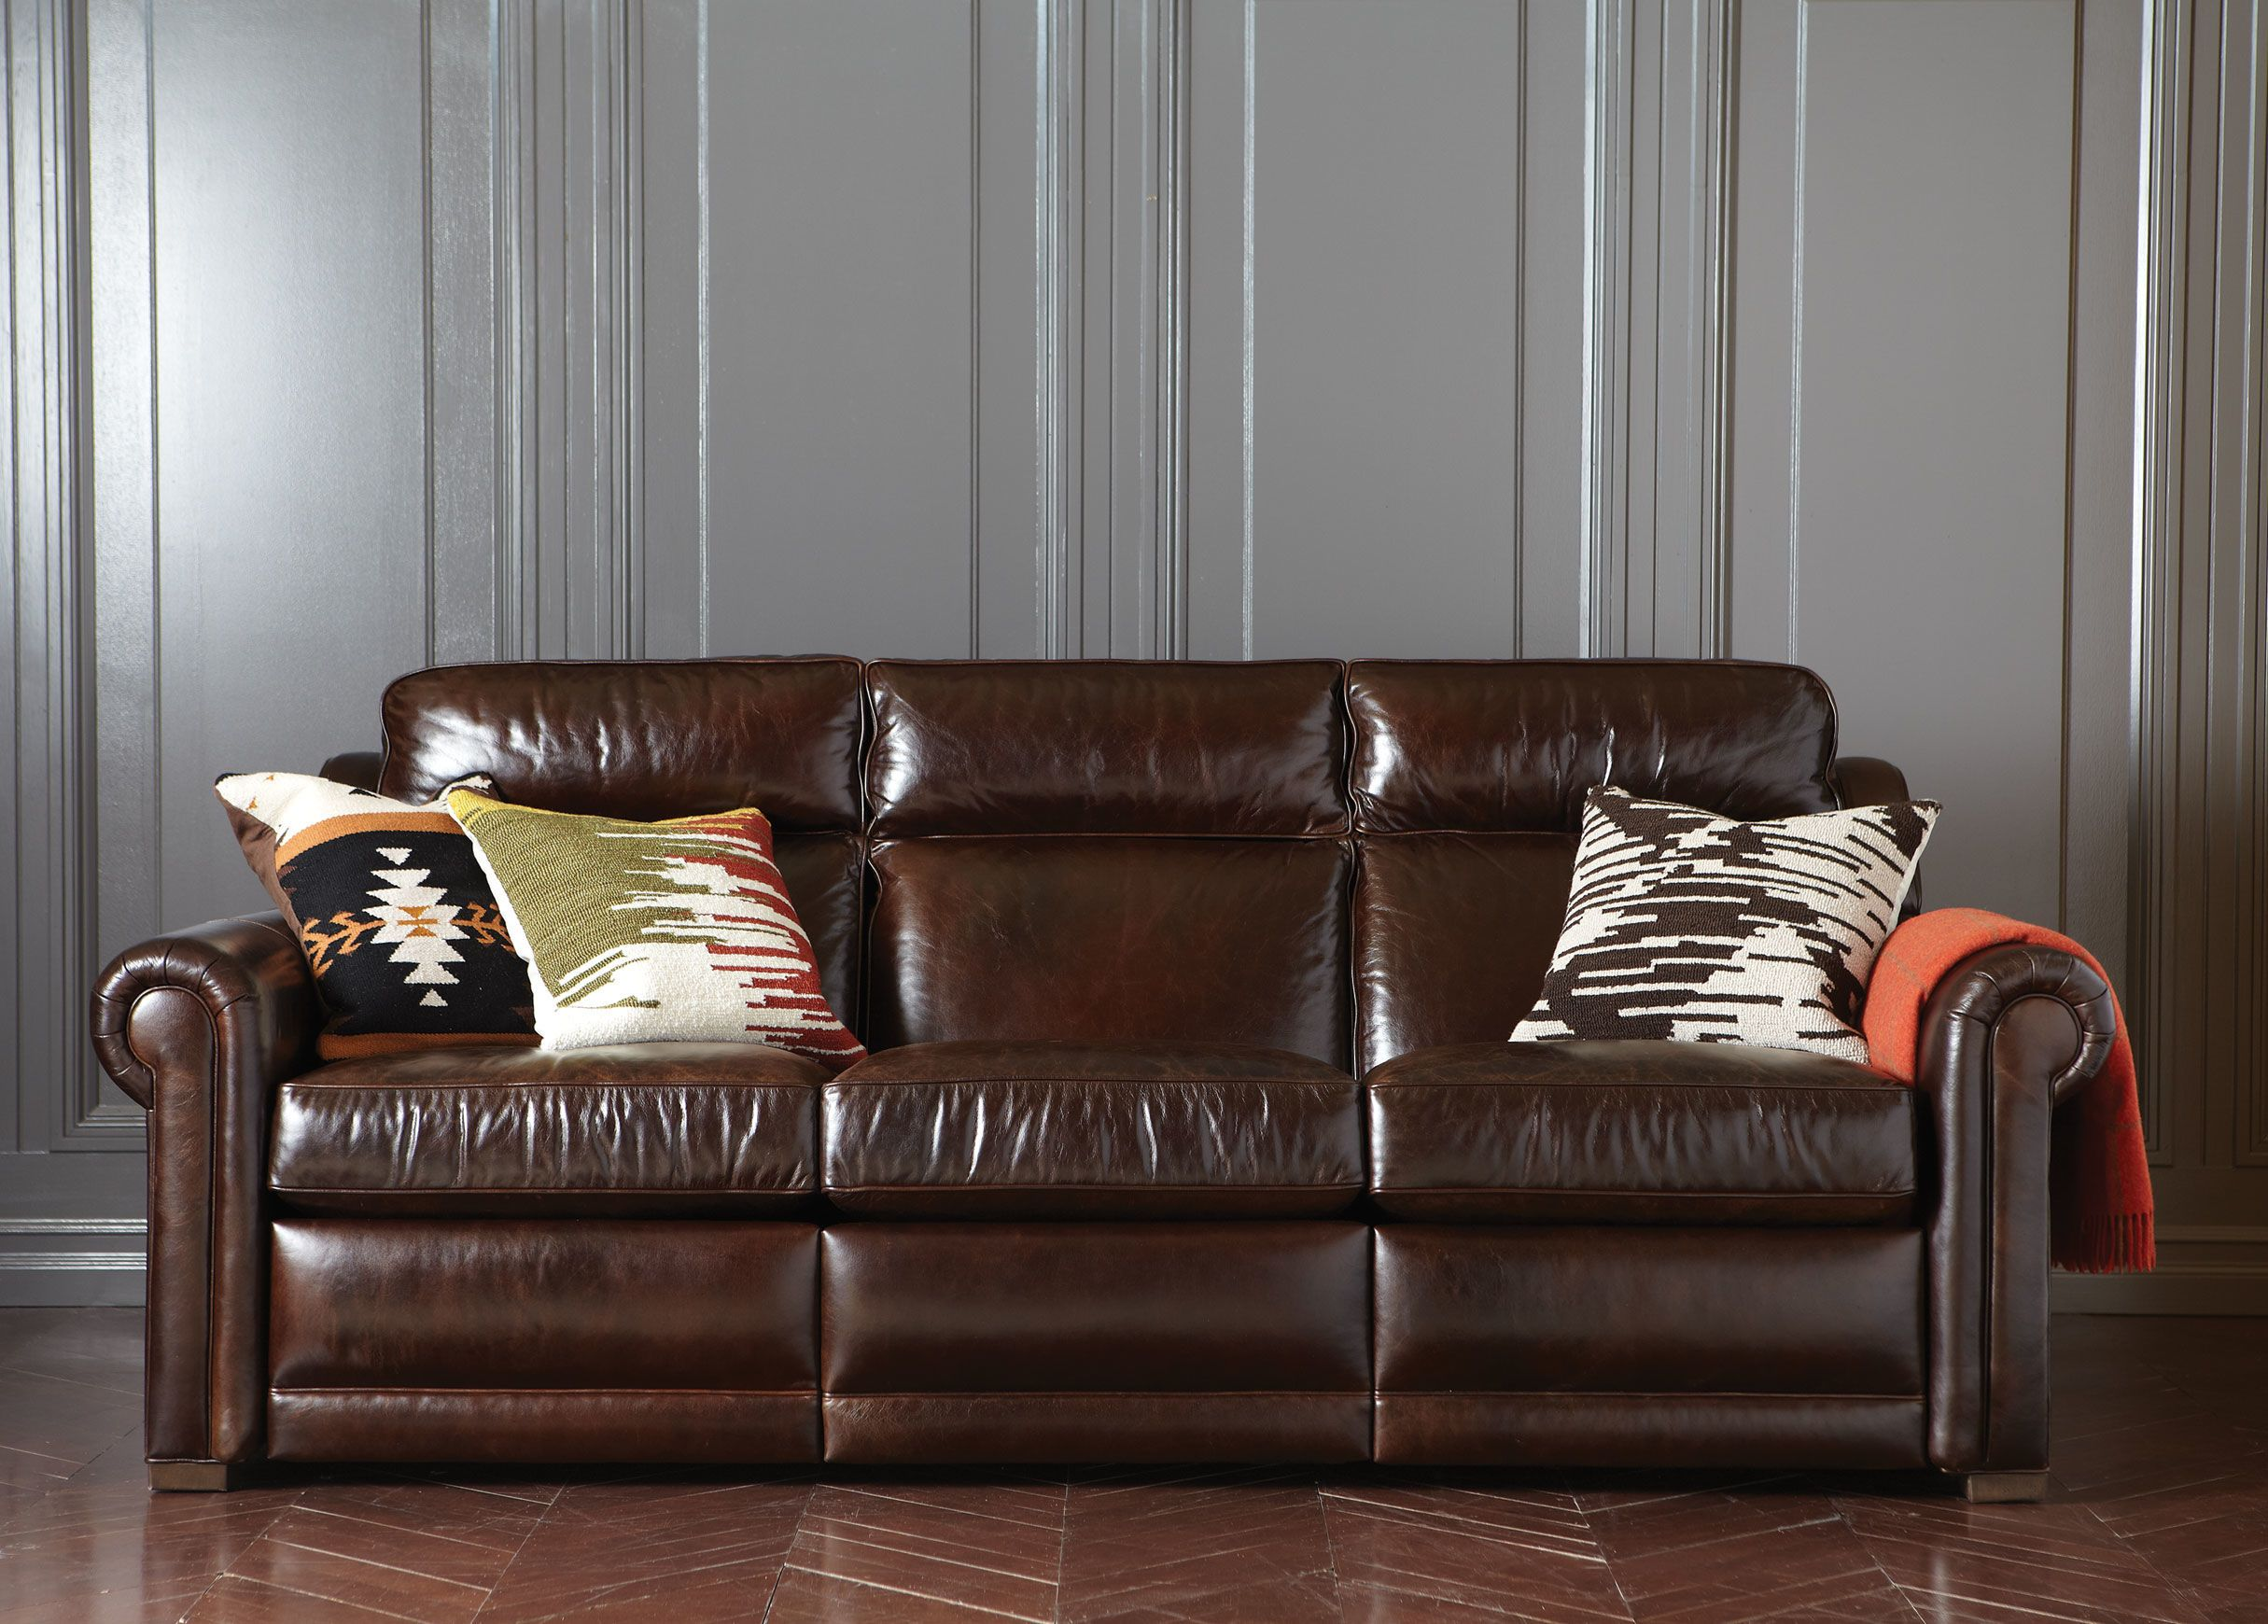 furniture sleeper for regarding air sofas tmidb couch intended pinterest leather uncategorized bed fine on remarkable kendall sofa loveseats gorgeous mattress allen com ethan